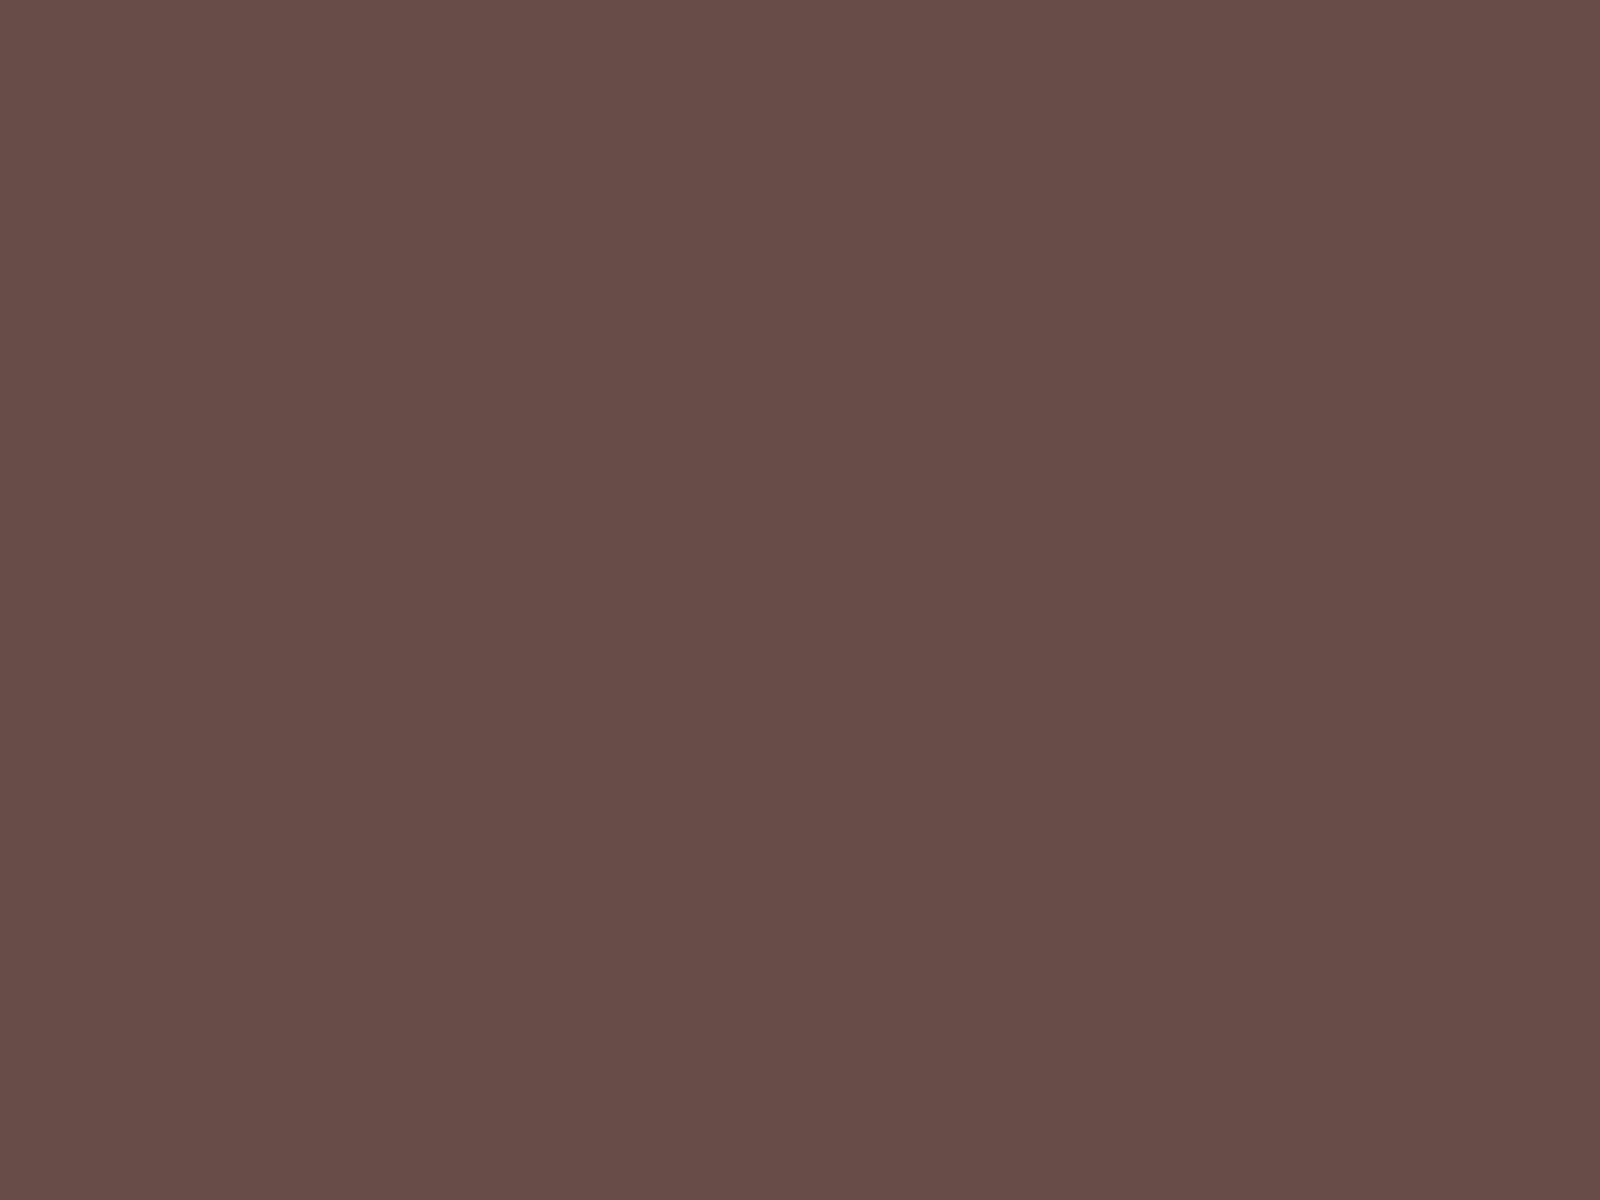 1600x1200 Medium Taupe Solid Color Background